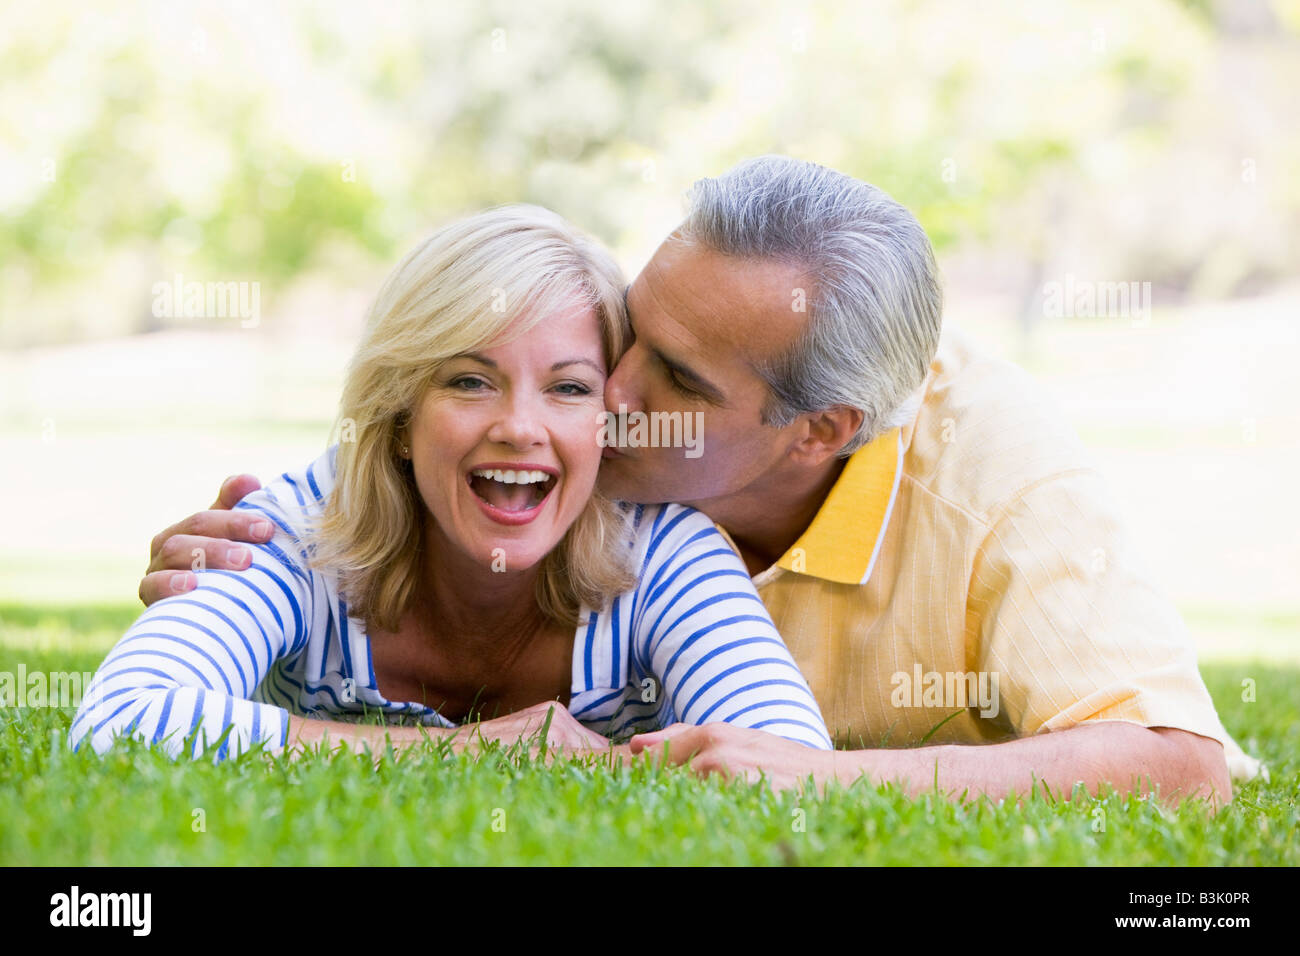 Couple relaxing outdoors in park kissing and smiling - Stock Image